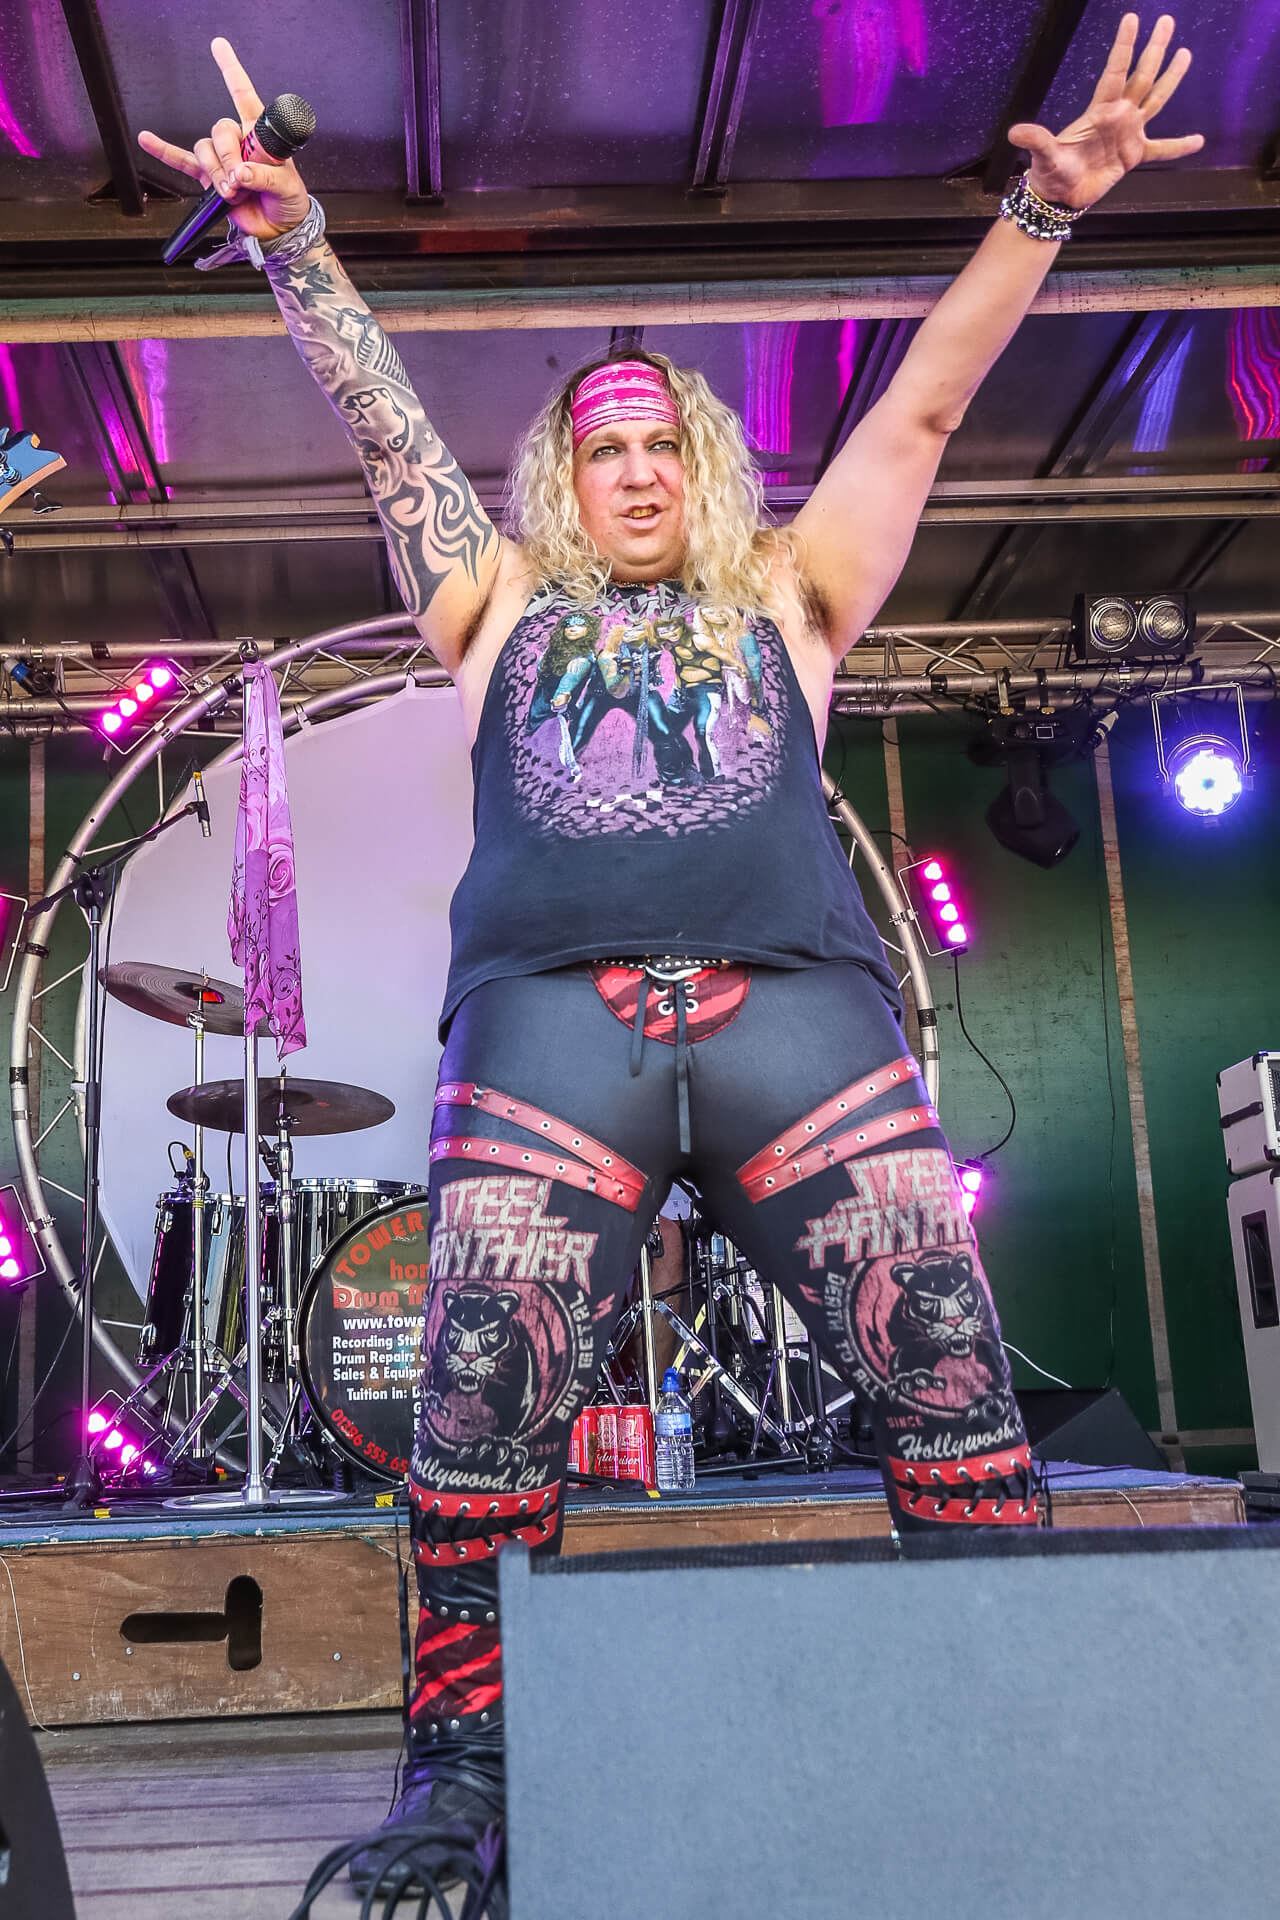 Jamie, frontman of Steel Panther tribute band Surreal Panther, stands on stage arms aloft taking the crowds applause and adulation at the end of the bands set. His alter ego is Michael Starr the Steel Panther frontman. Jamie who is seen in colour holds the mic in his right hand whist making a 'Horns' gesture.